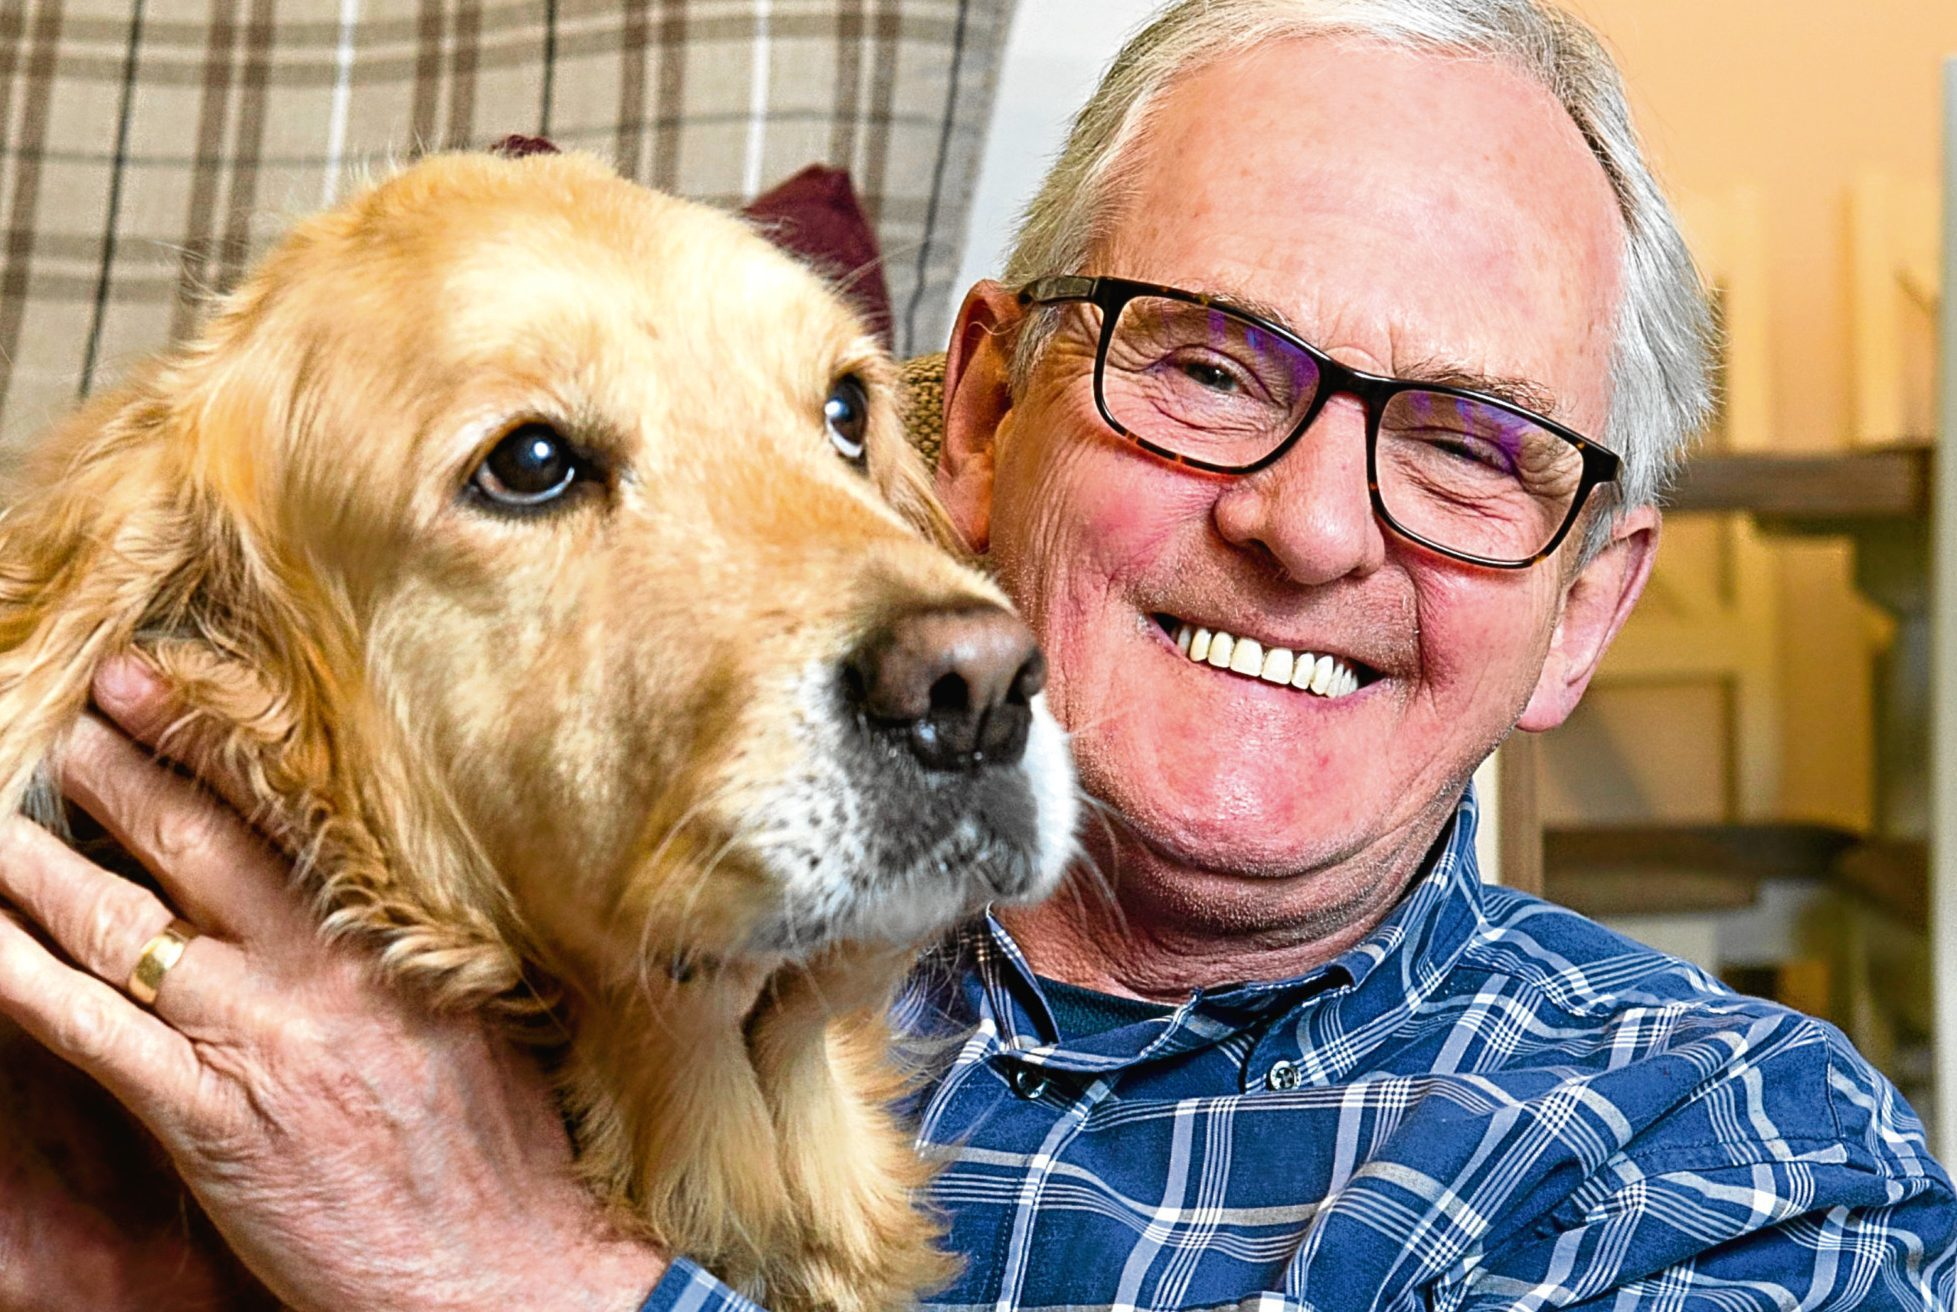 Ivan Williams (and his dog Millie), who has a heart condition called Atrial Fibrillation (Andrew Cawley / DC Thomson)